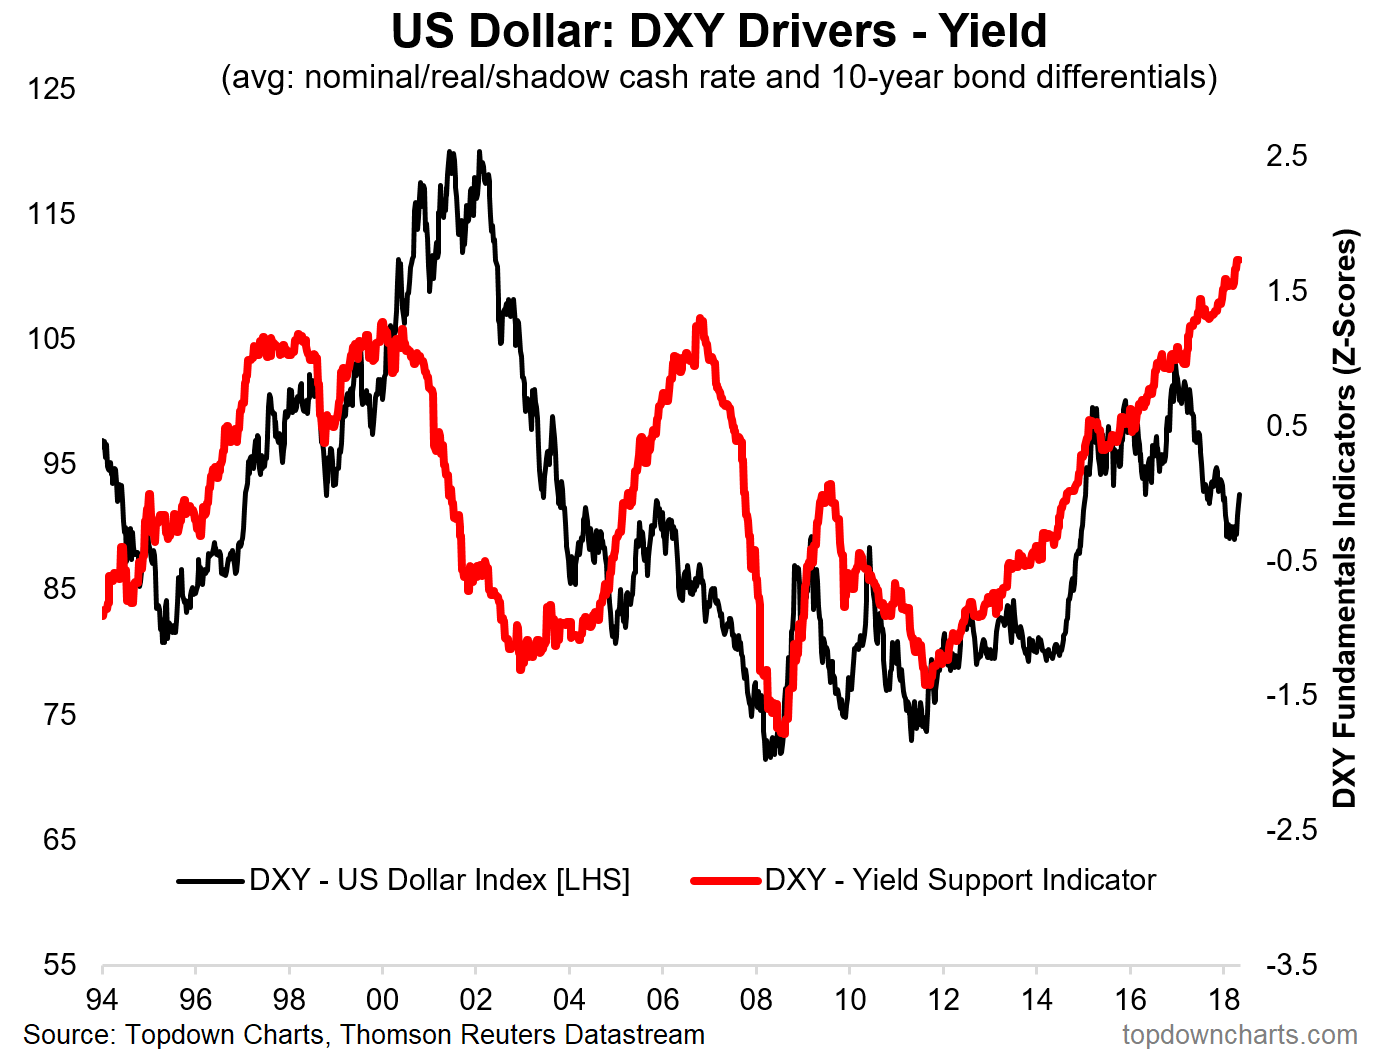 Dxy yield support driver